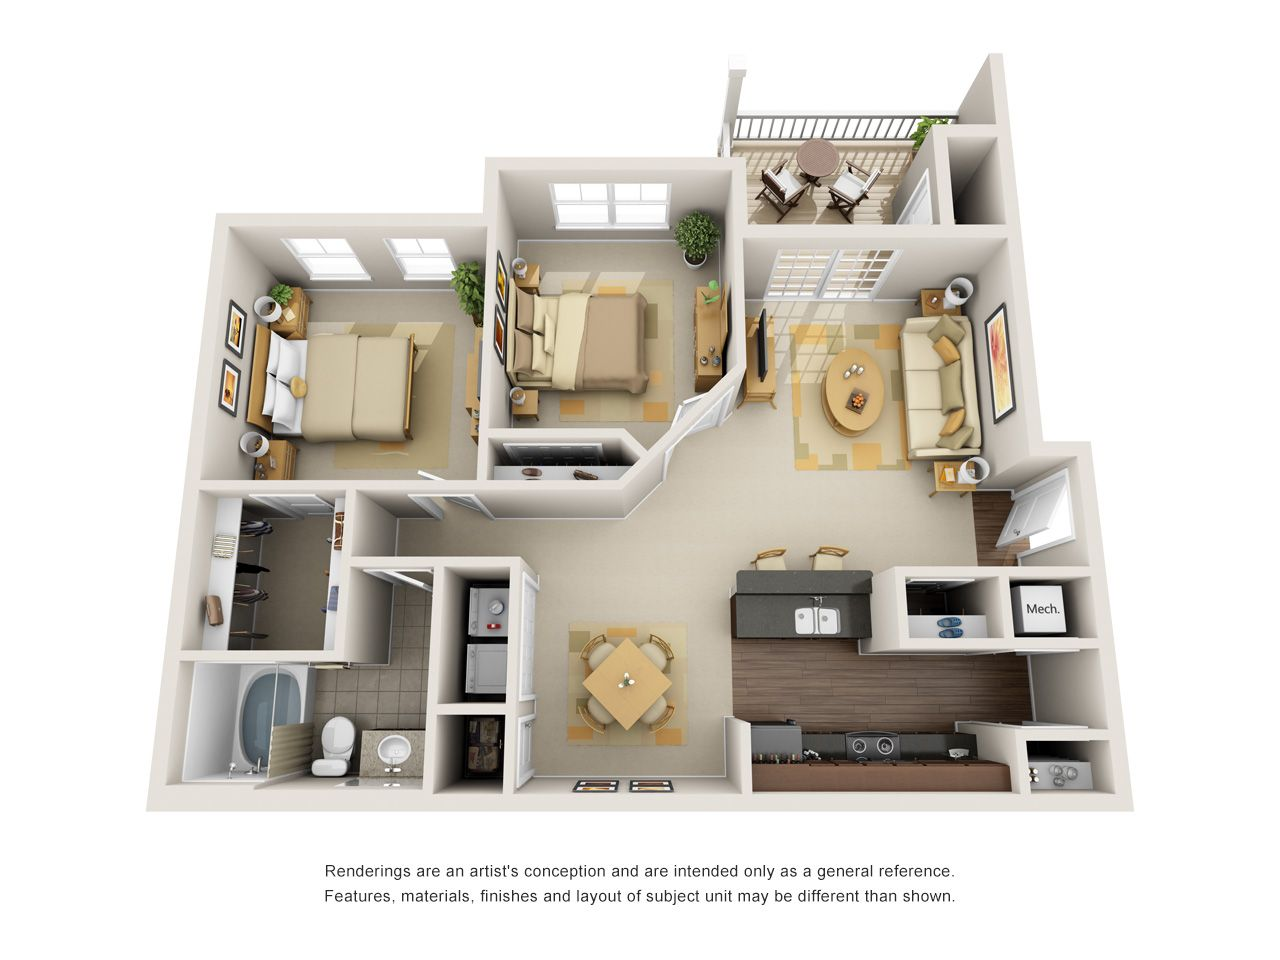 1 2 And 3 Bedroom Luxury Apartments In Fort Wayne In Fortwayne Indiana Apartment Steadfast Luxurious Bedrooms Apartment Layout Affordable Bedroom